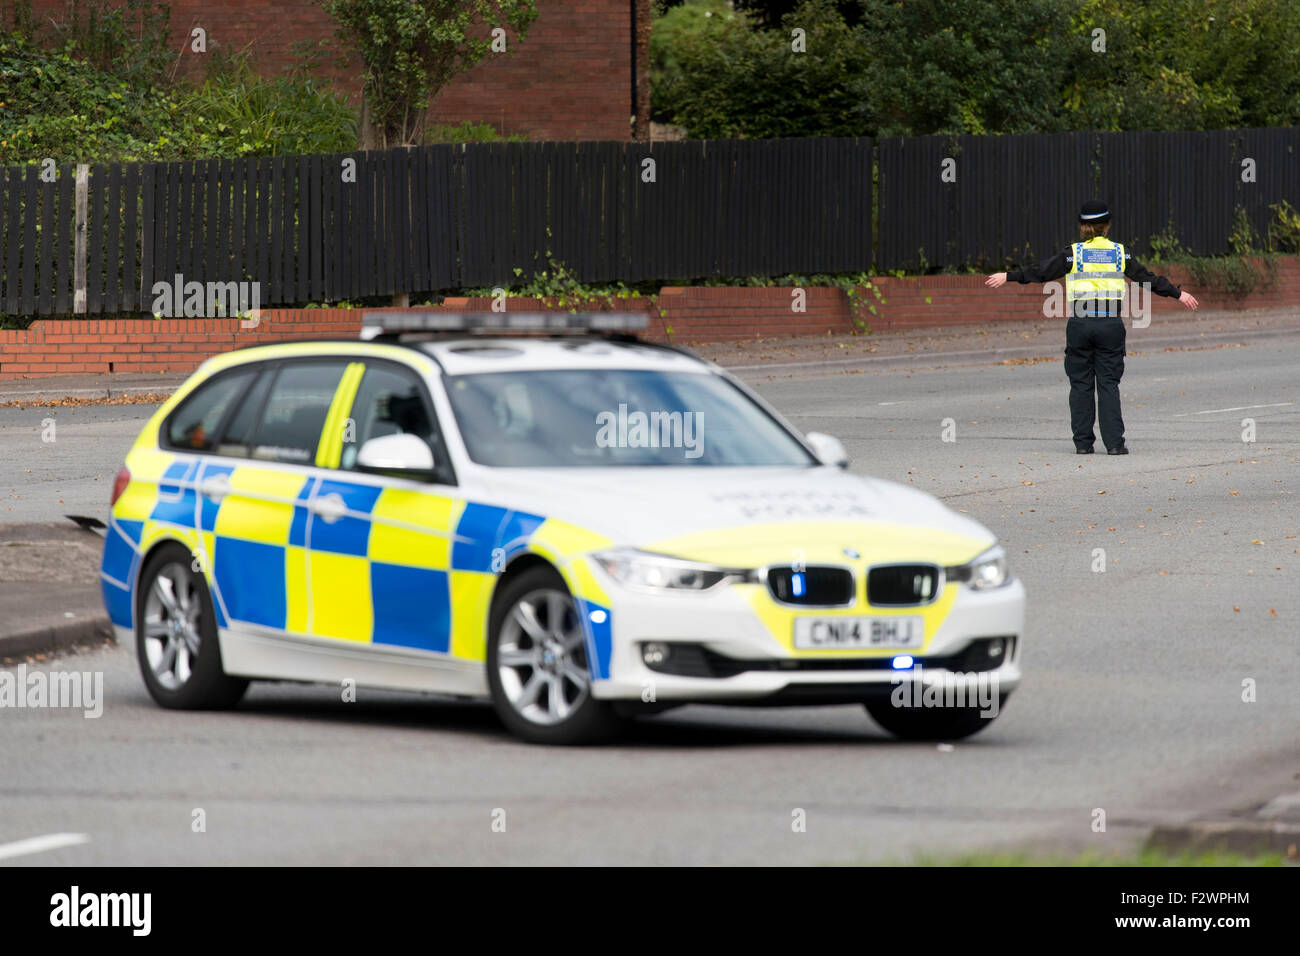 A police roadblock in place after a road traffic accident. - Stock Image